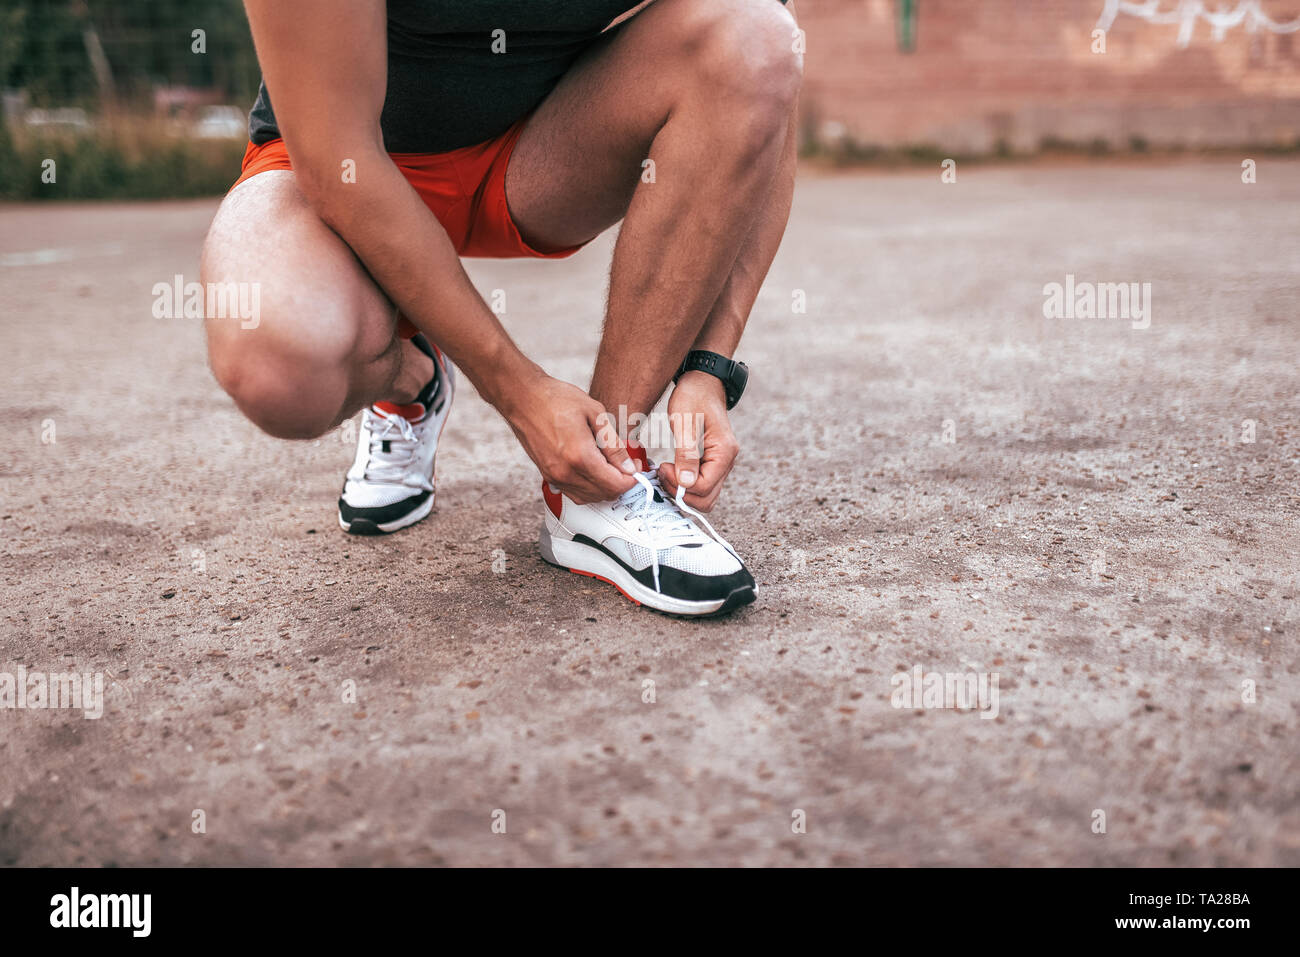 A man athlete tying shoelaces on shoes, training, fitness workout jogging. Summer city background of athletic field. Active lifestyle of youth, close - Stock Image